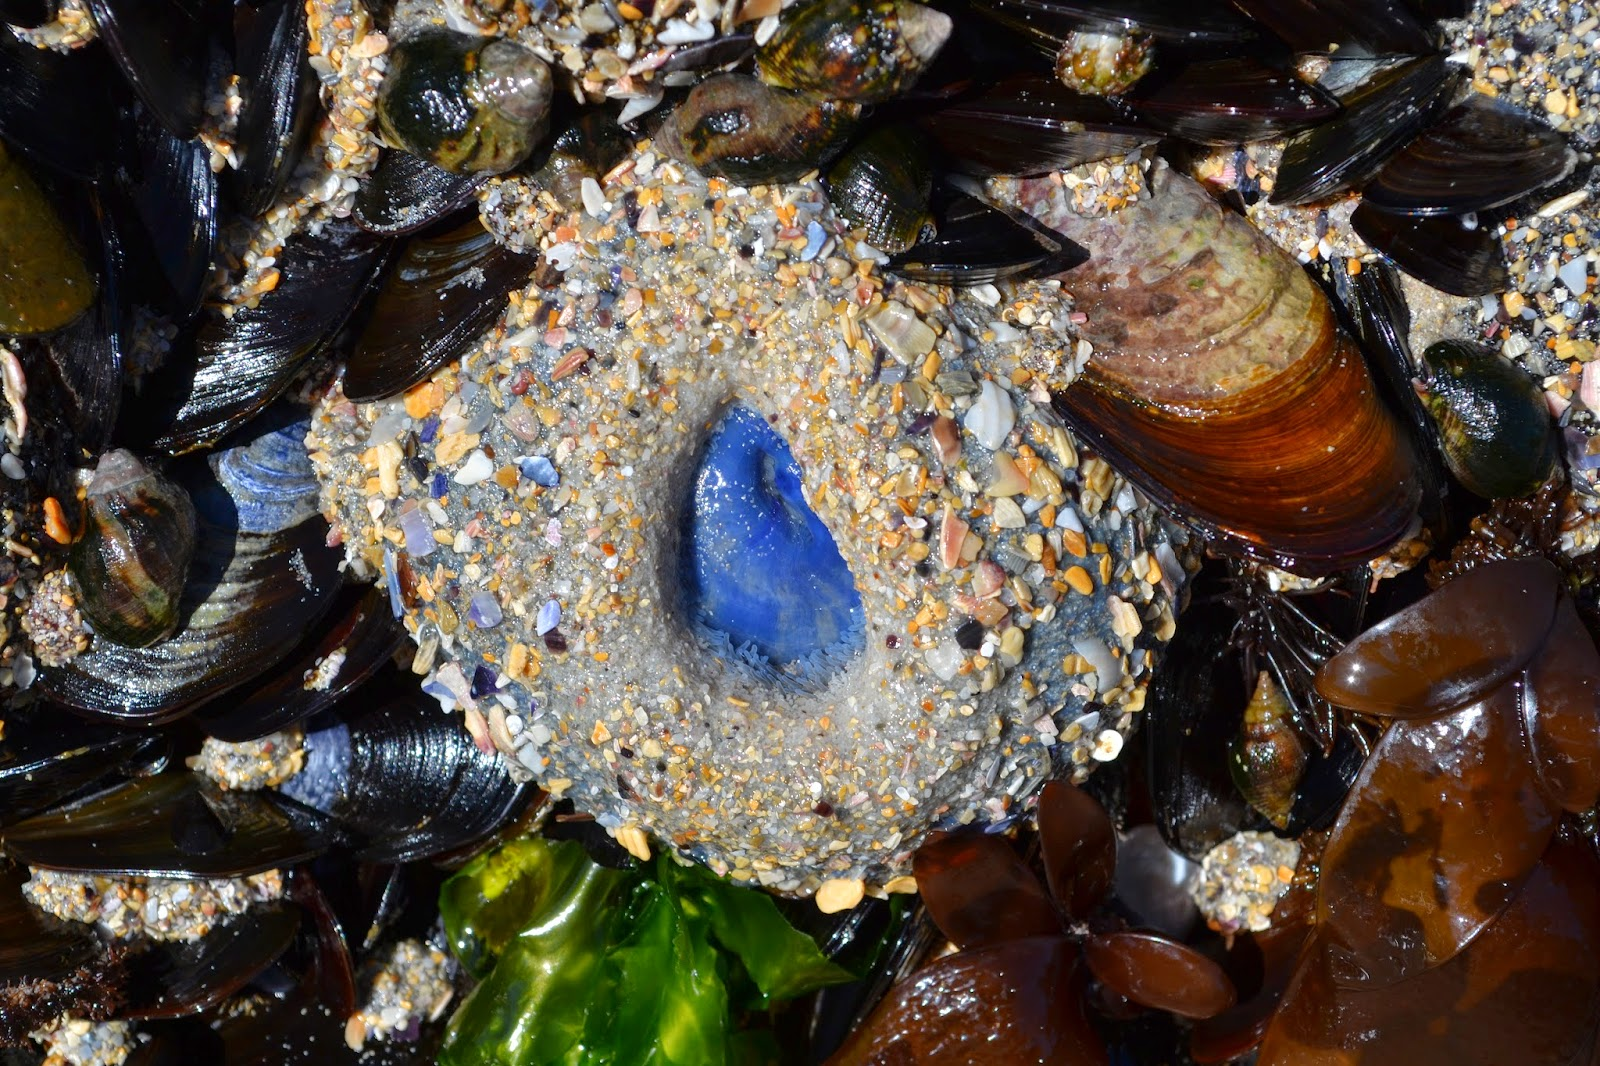 Sea anemone with blue inner